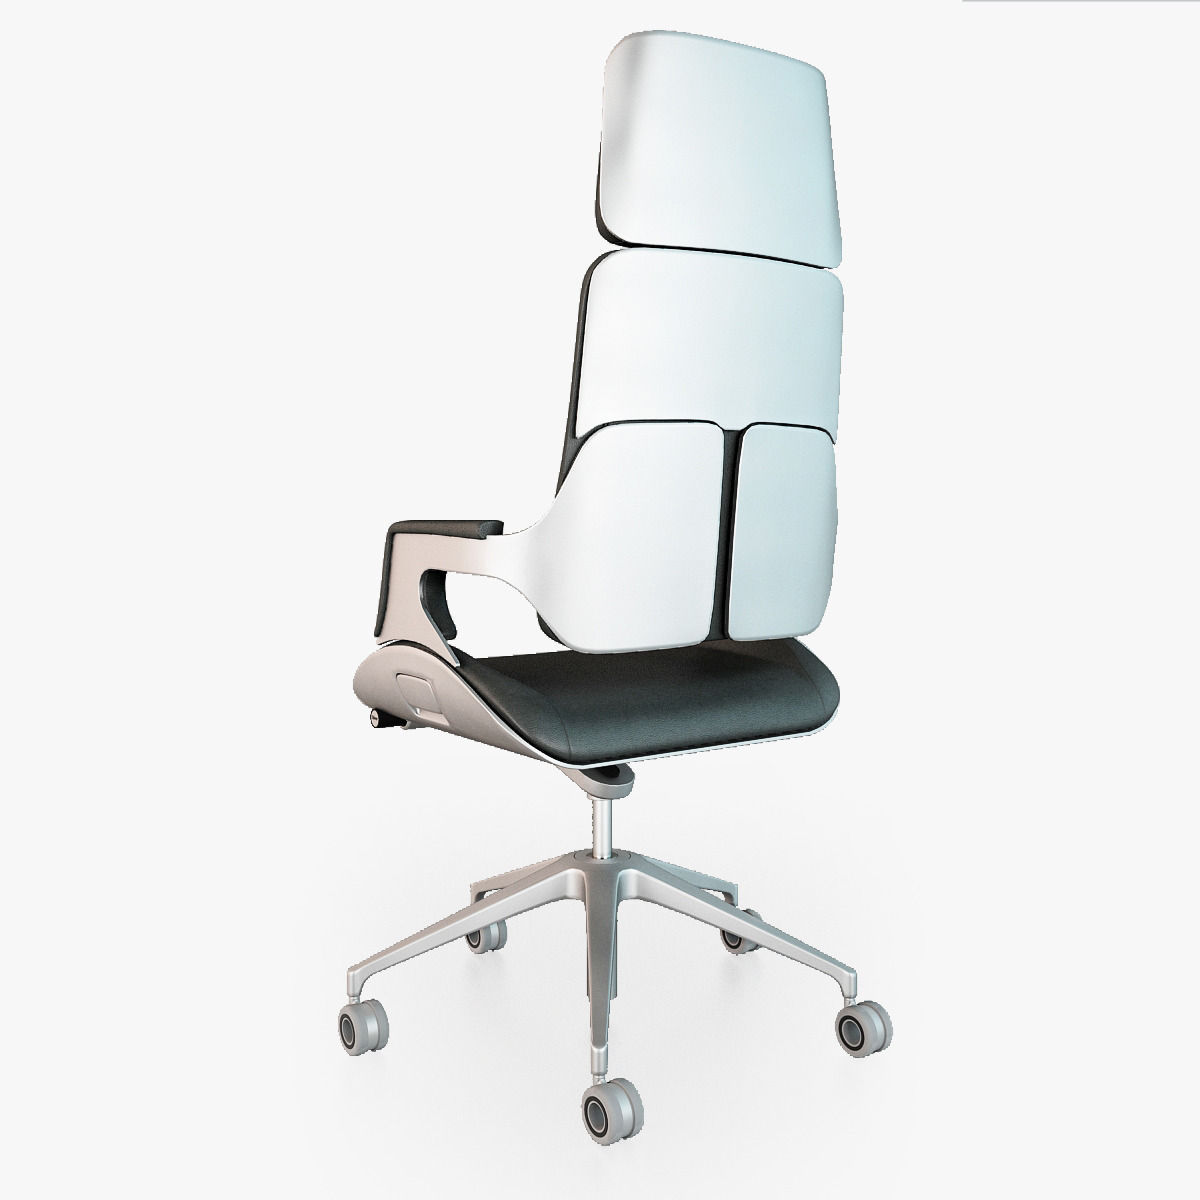 Beautiful ... Interstuhl Silver 362s Office Chair 3d Model Max Obj Fbx 5 ...